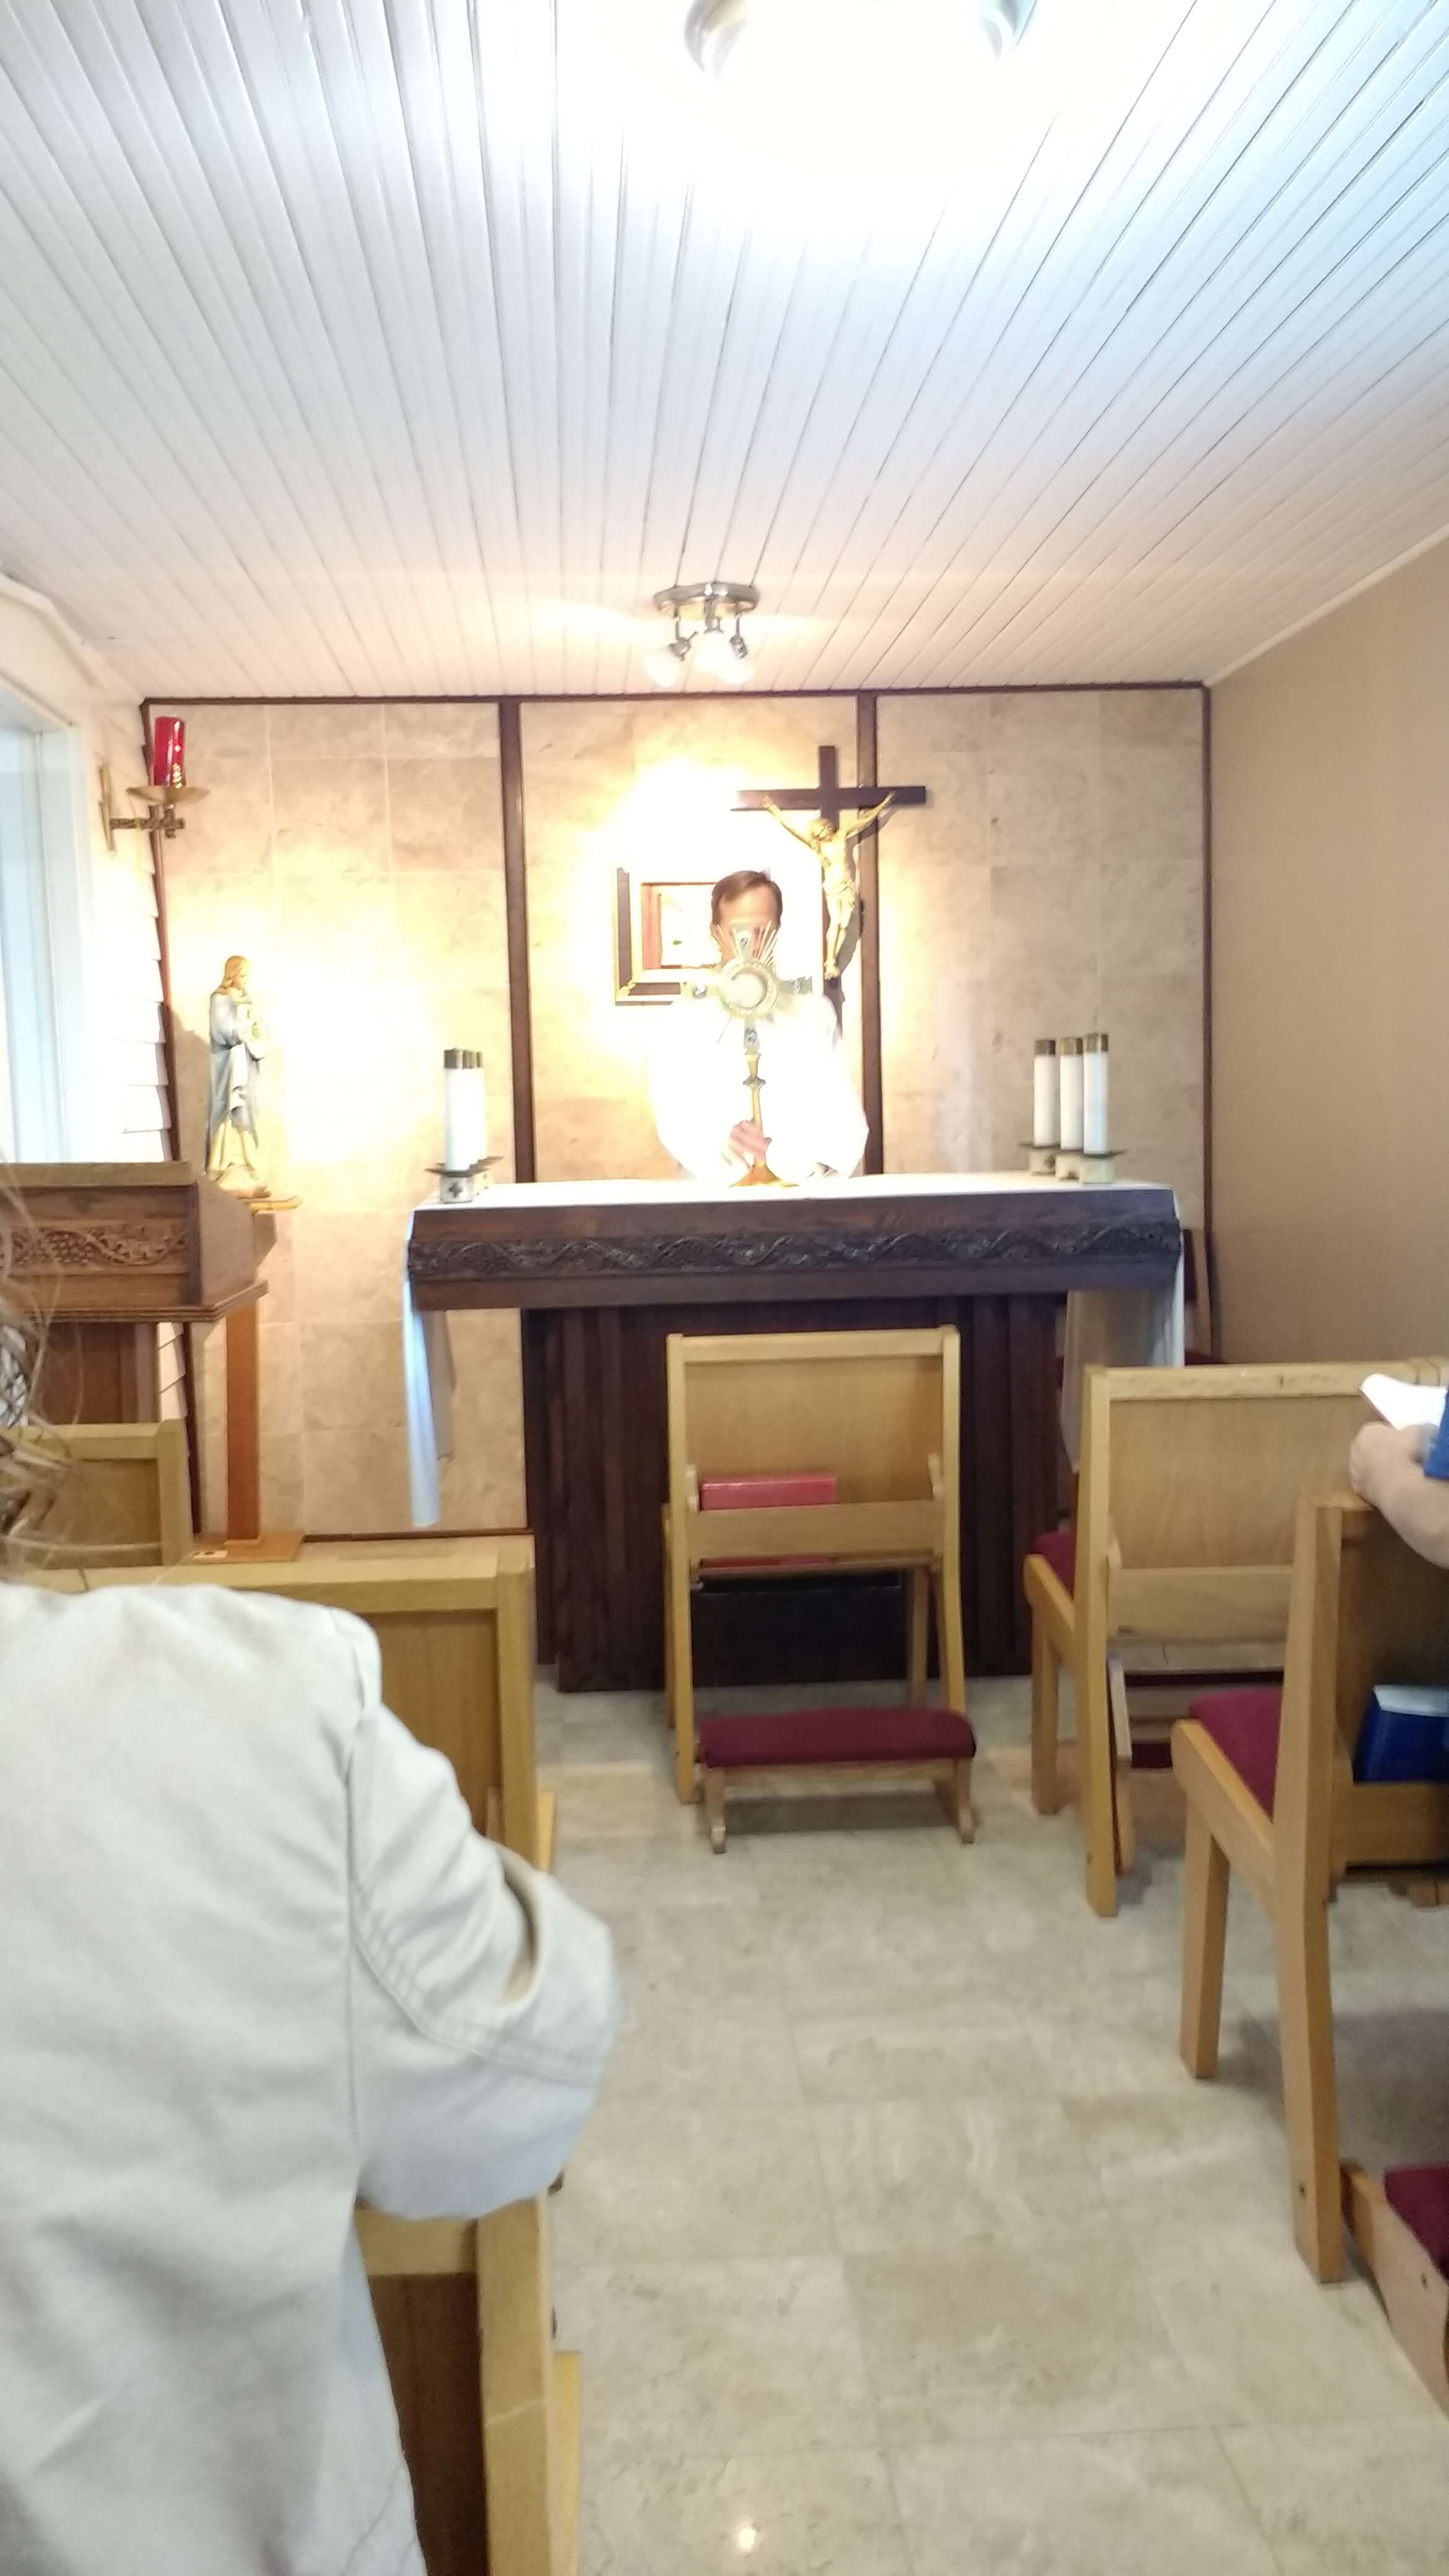 Eucharistic Adoration is part of the Friday prayer gathering.